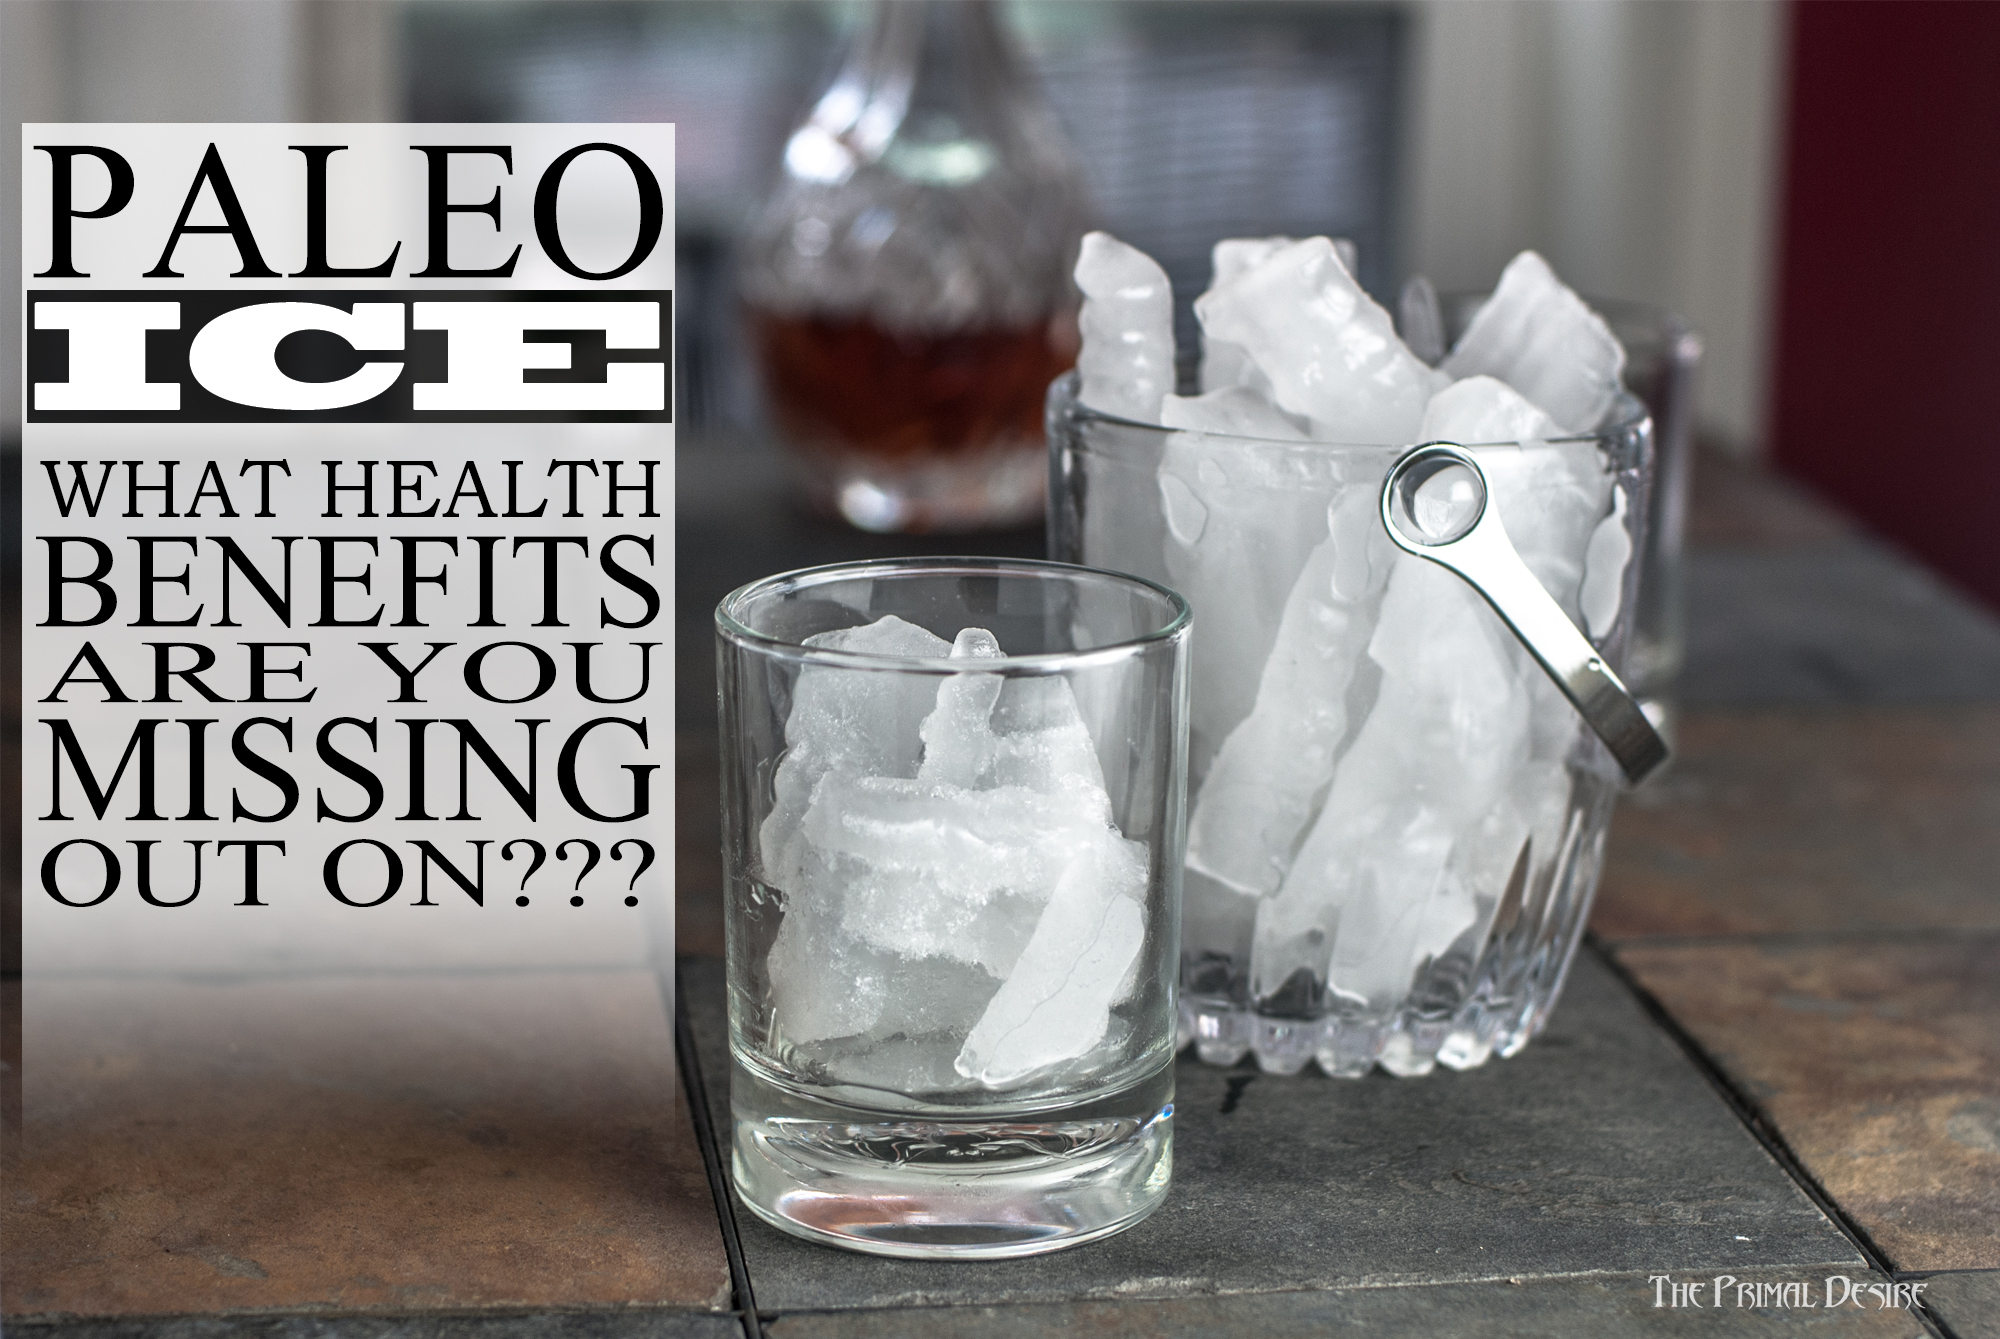 Paleo Ice Recipe - What health benefits have you been missing out on? https://www.theprimaldesire.com/paleo-ice-recipe